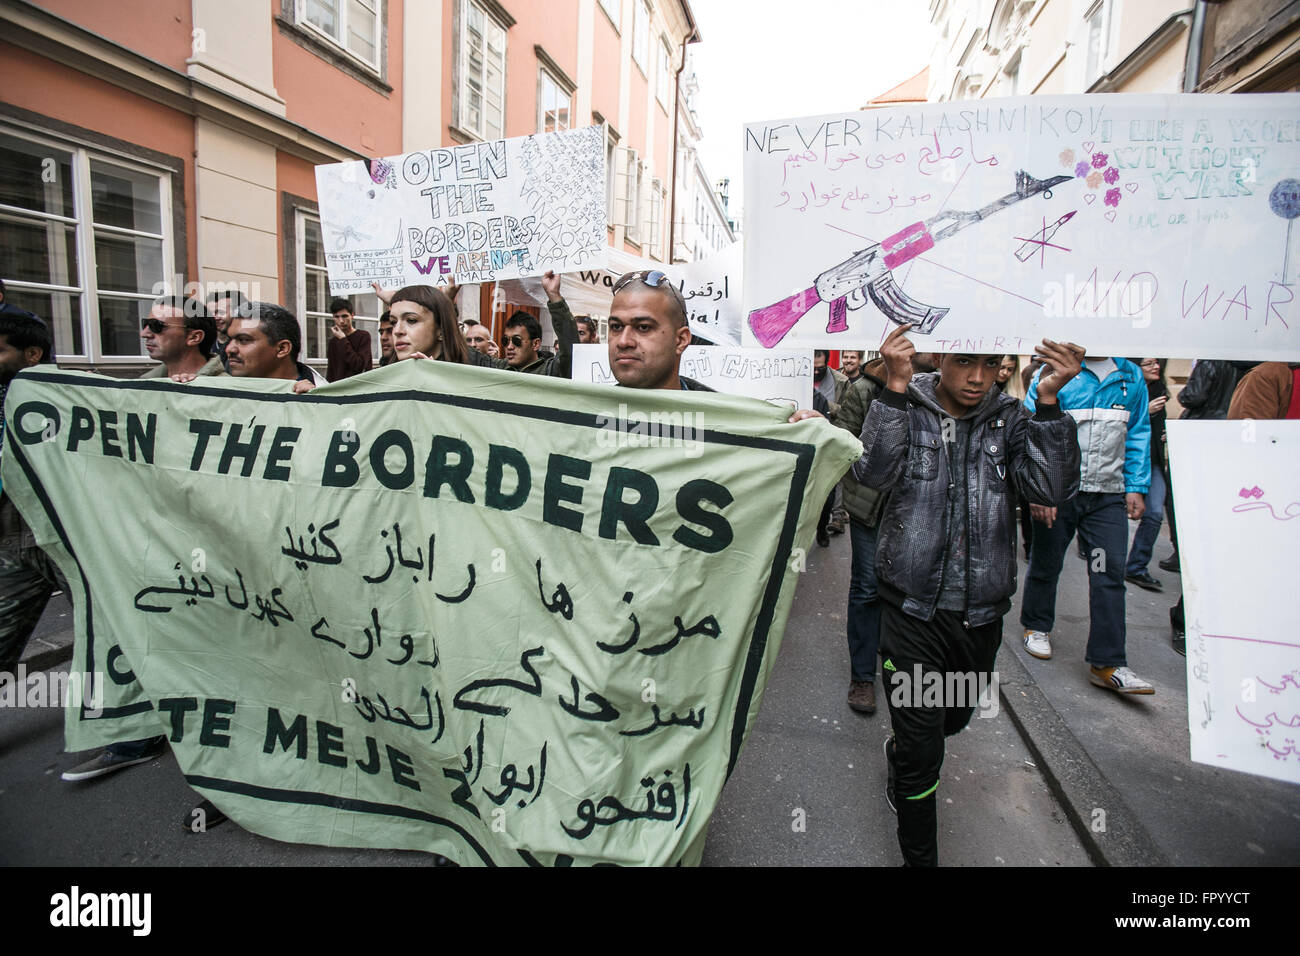 Ljubljana, Slovenia. 19th Mar, 2016. Protesters carry banners during a protest against racism and fascism in Ljubljana, - Stock Image